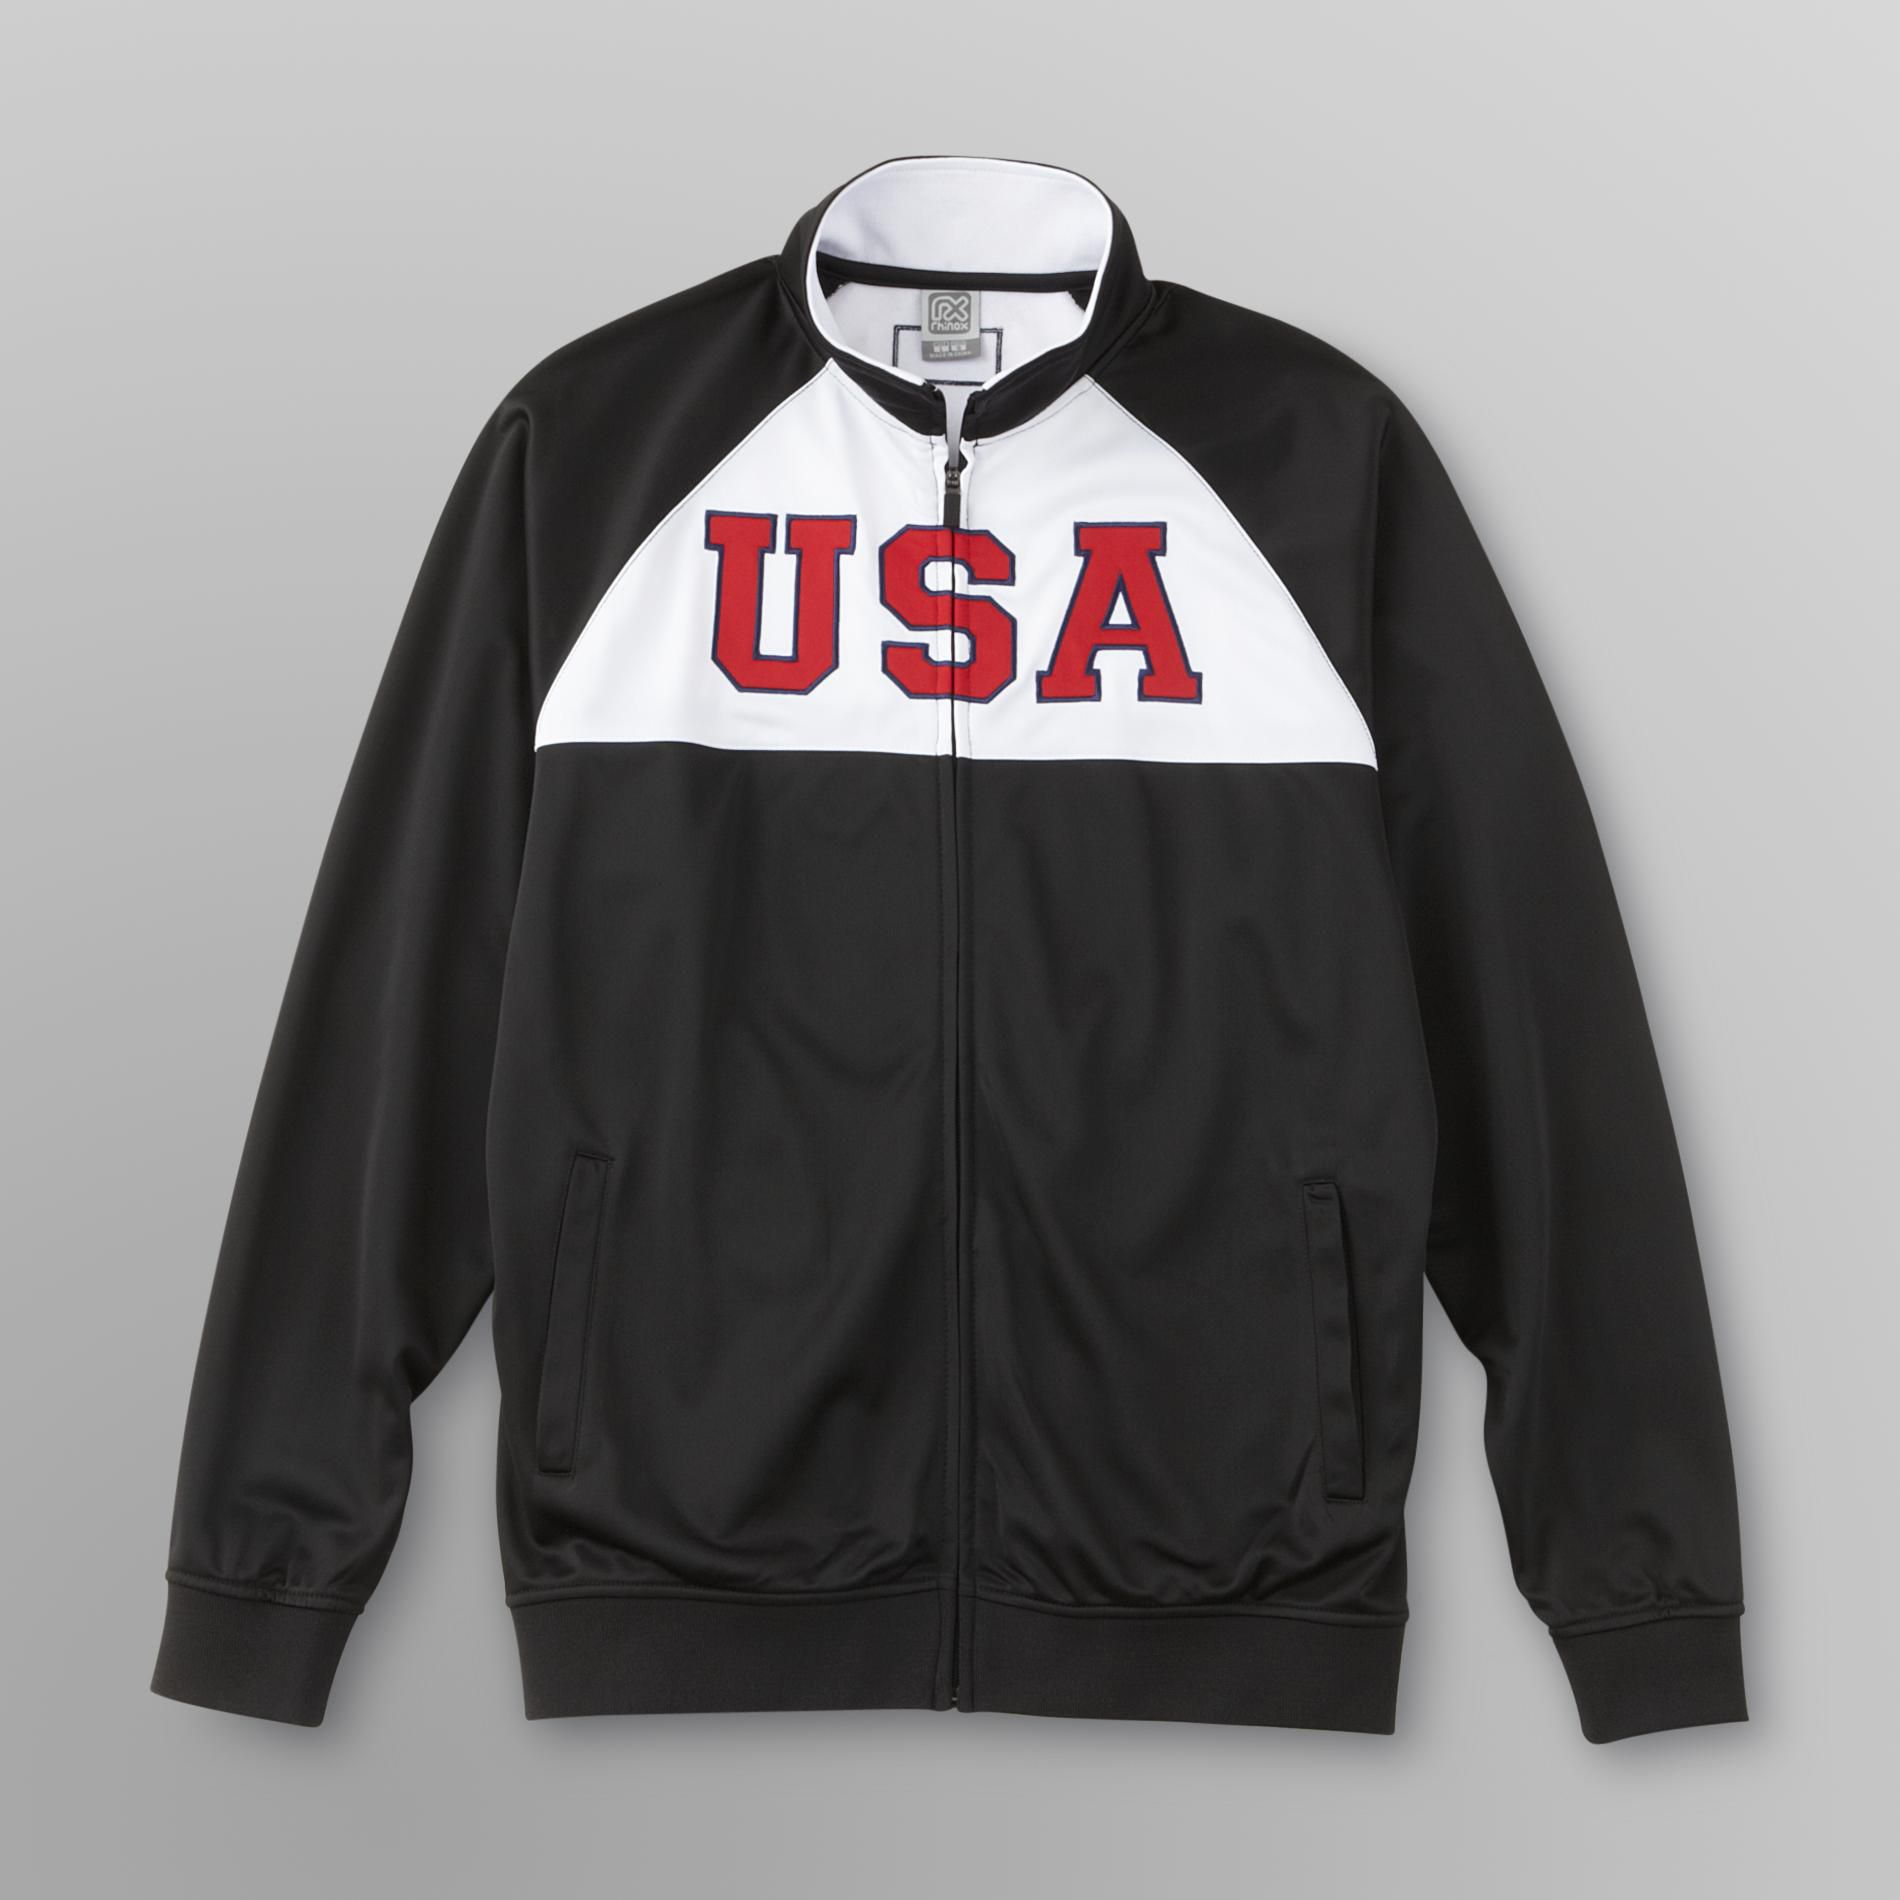 EURO SOCCER Young Men's Track Jacket - USA at Kmart.com